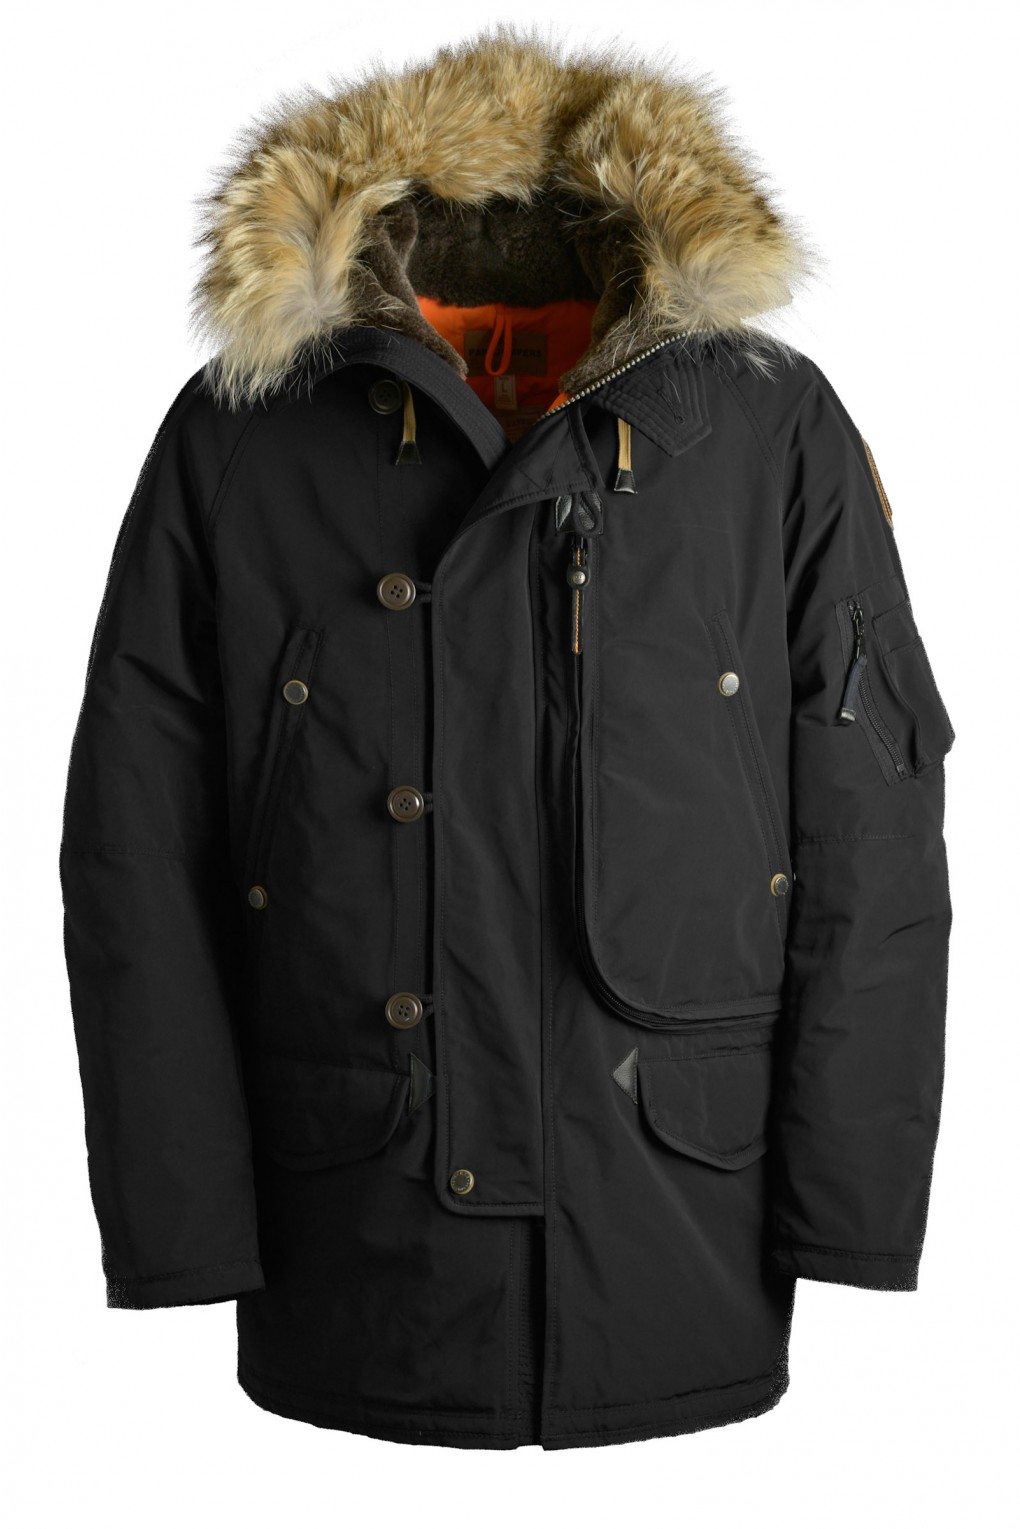 parajumpers TYPE N-3B man outerwear Black